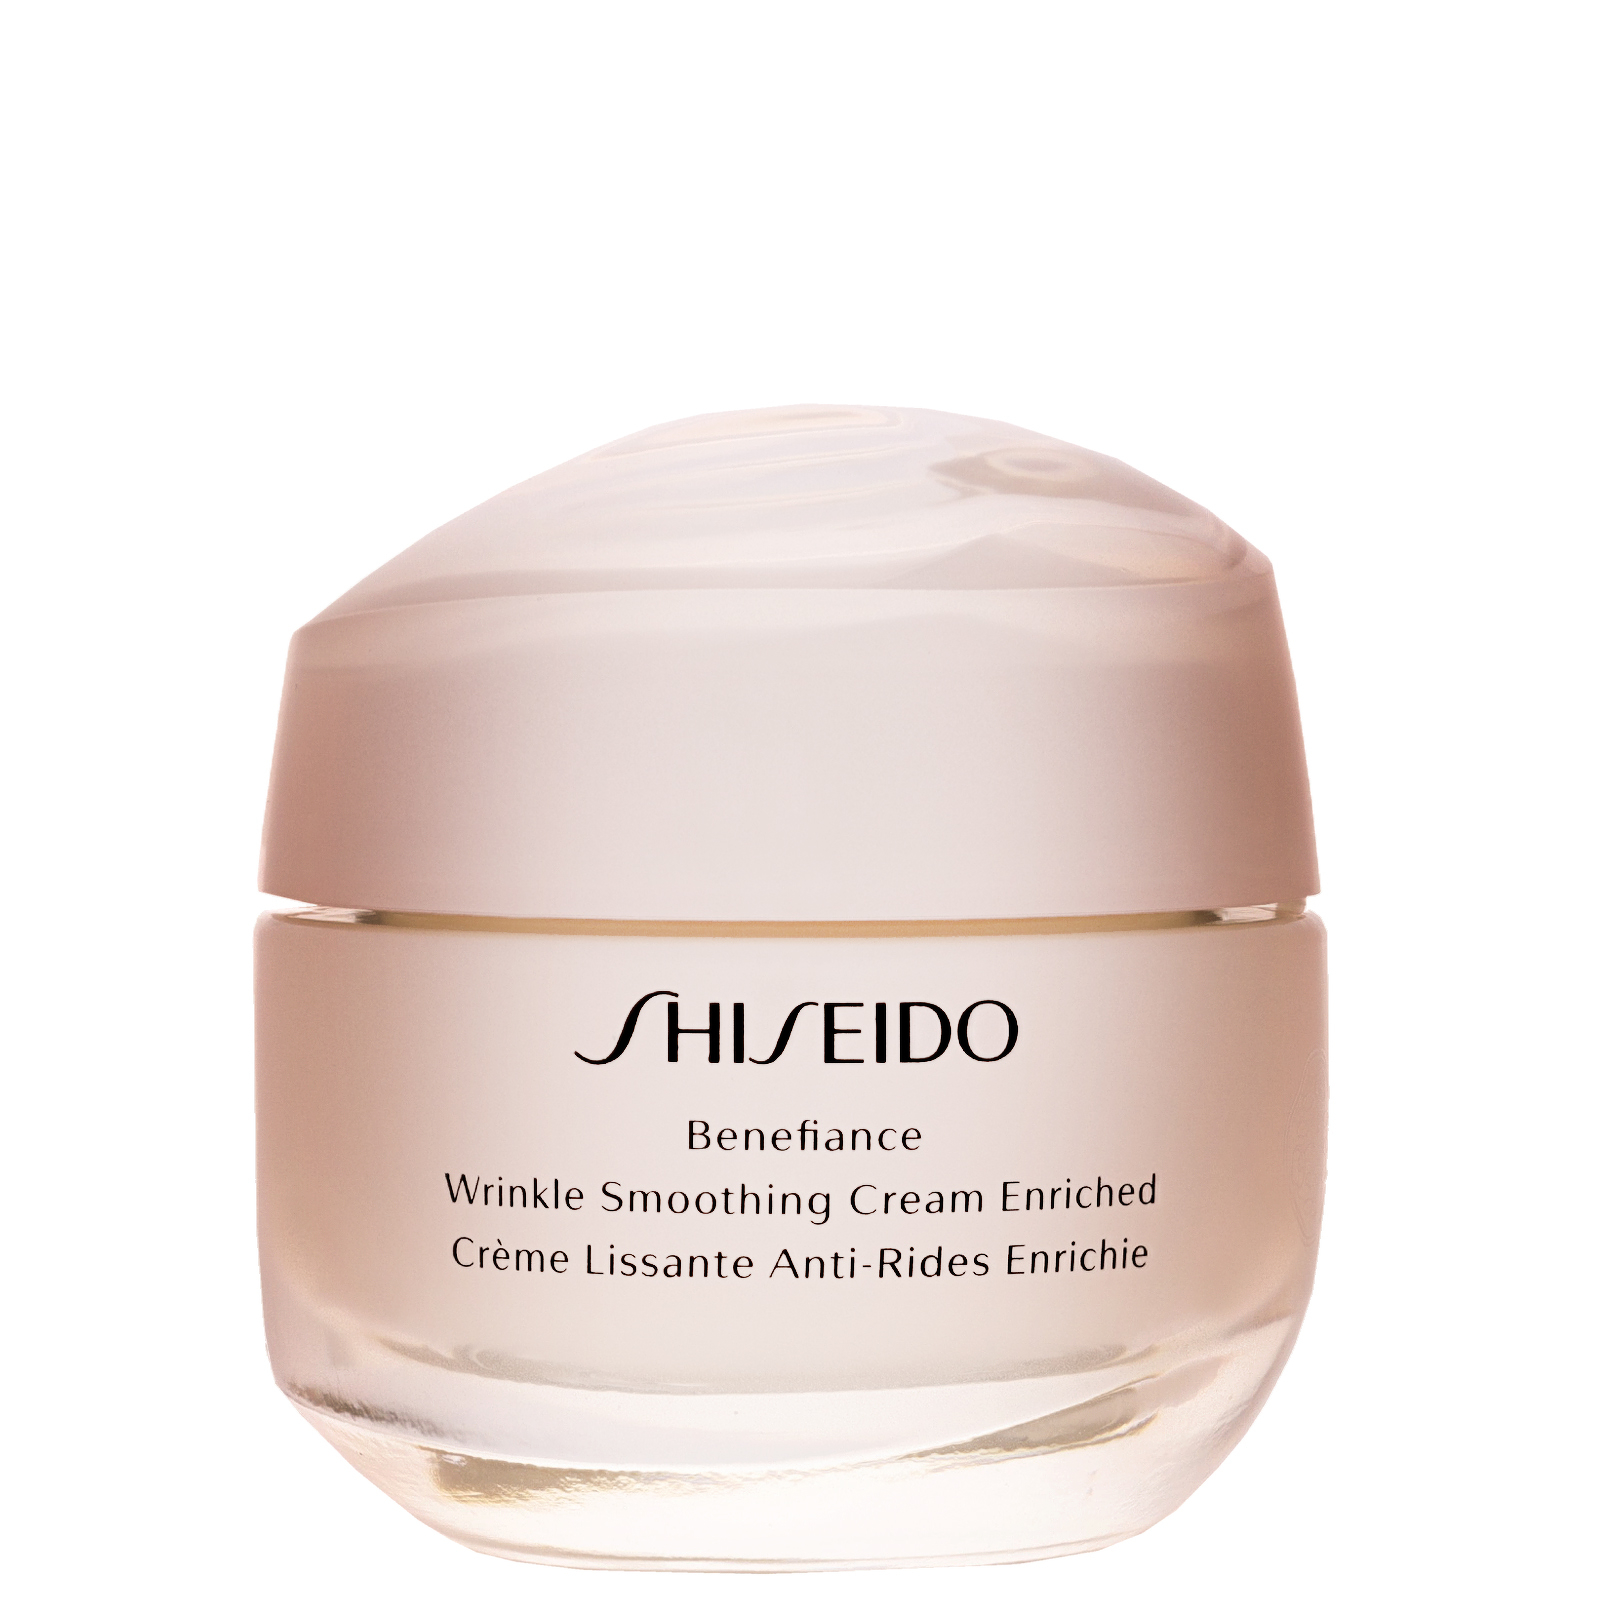 Wrinkle Smoothing Cream Enriched 50ml / 1.7 Oz. by Shiseido